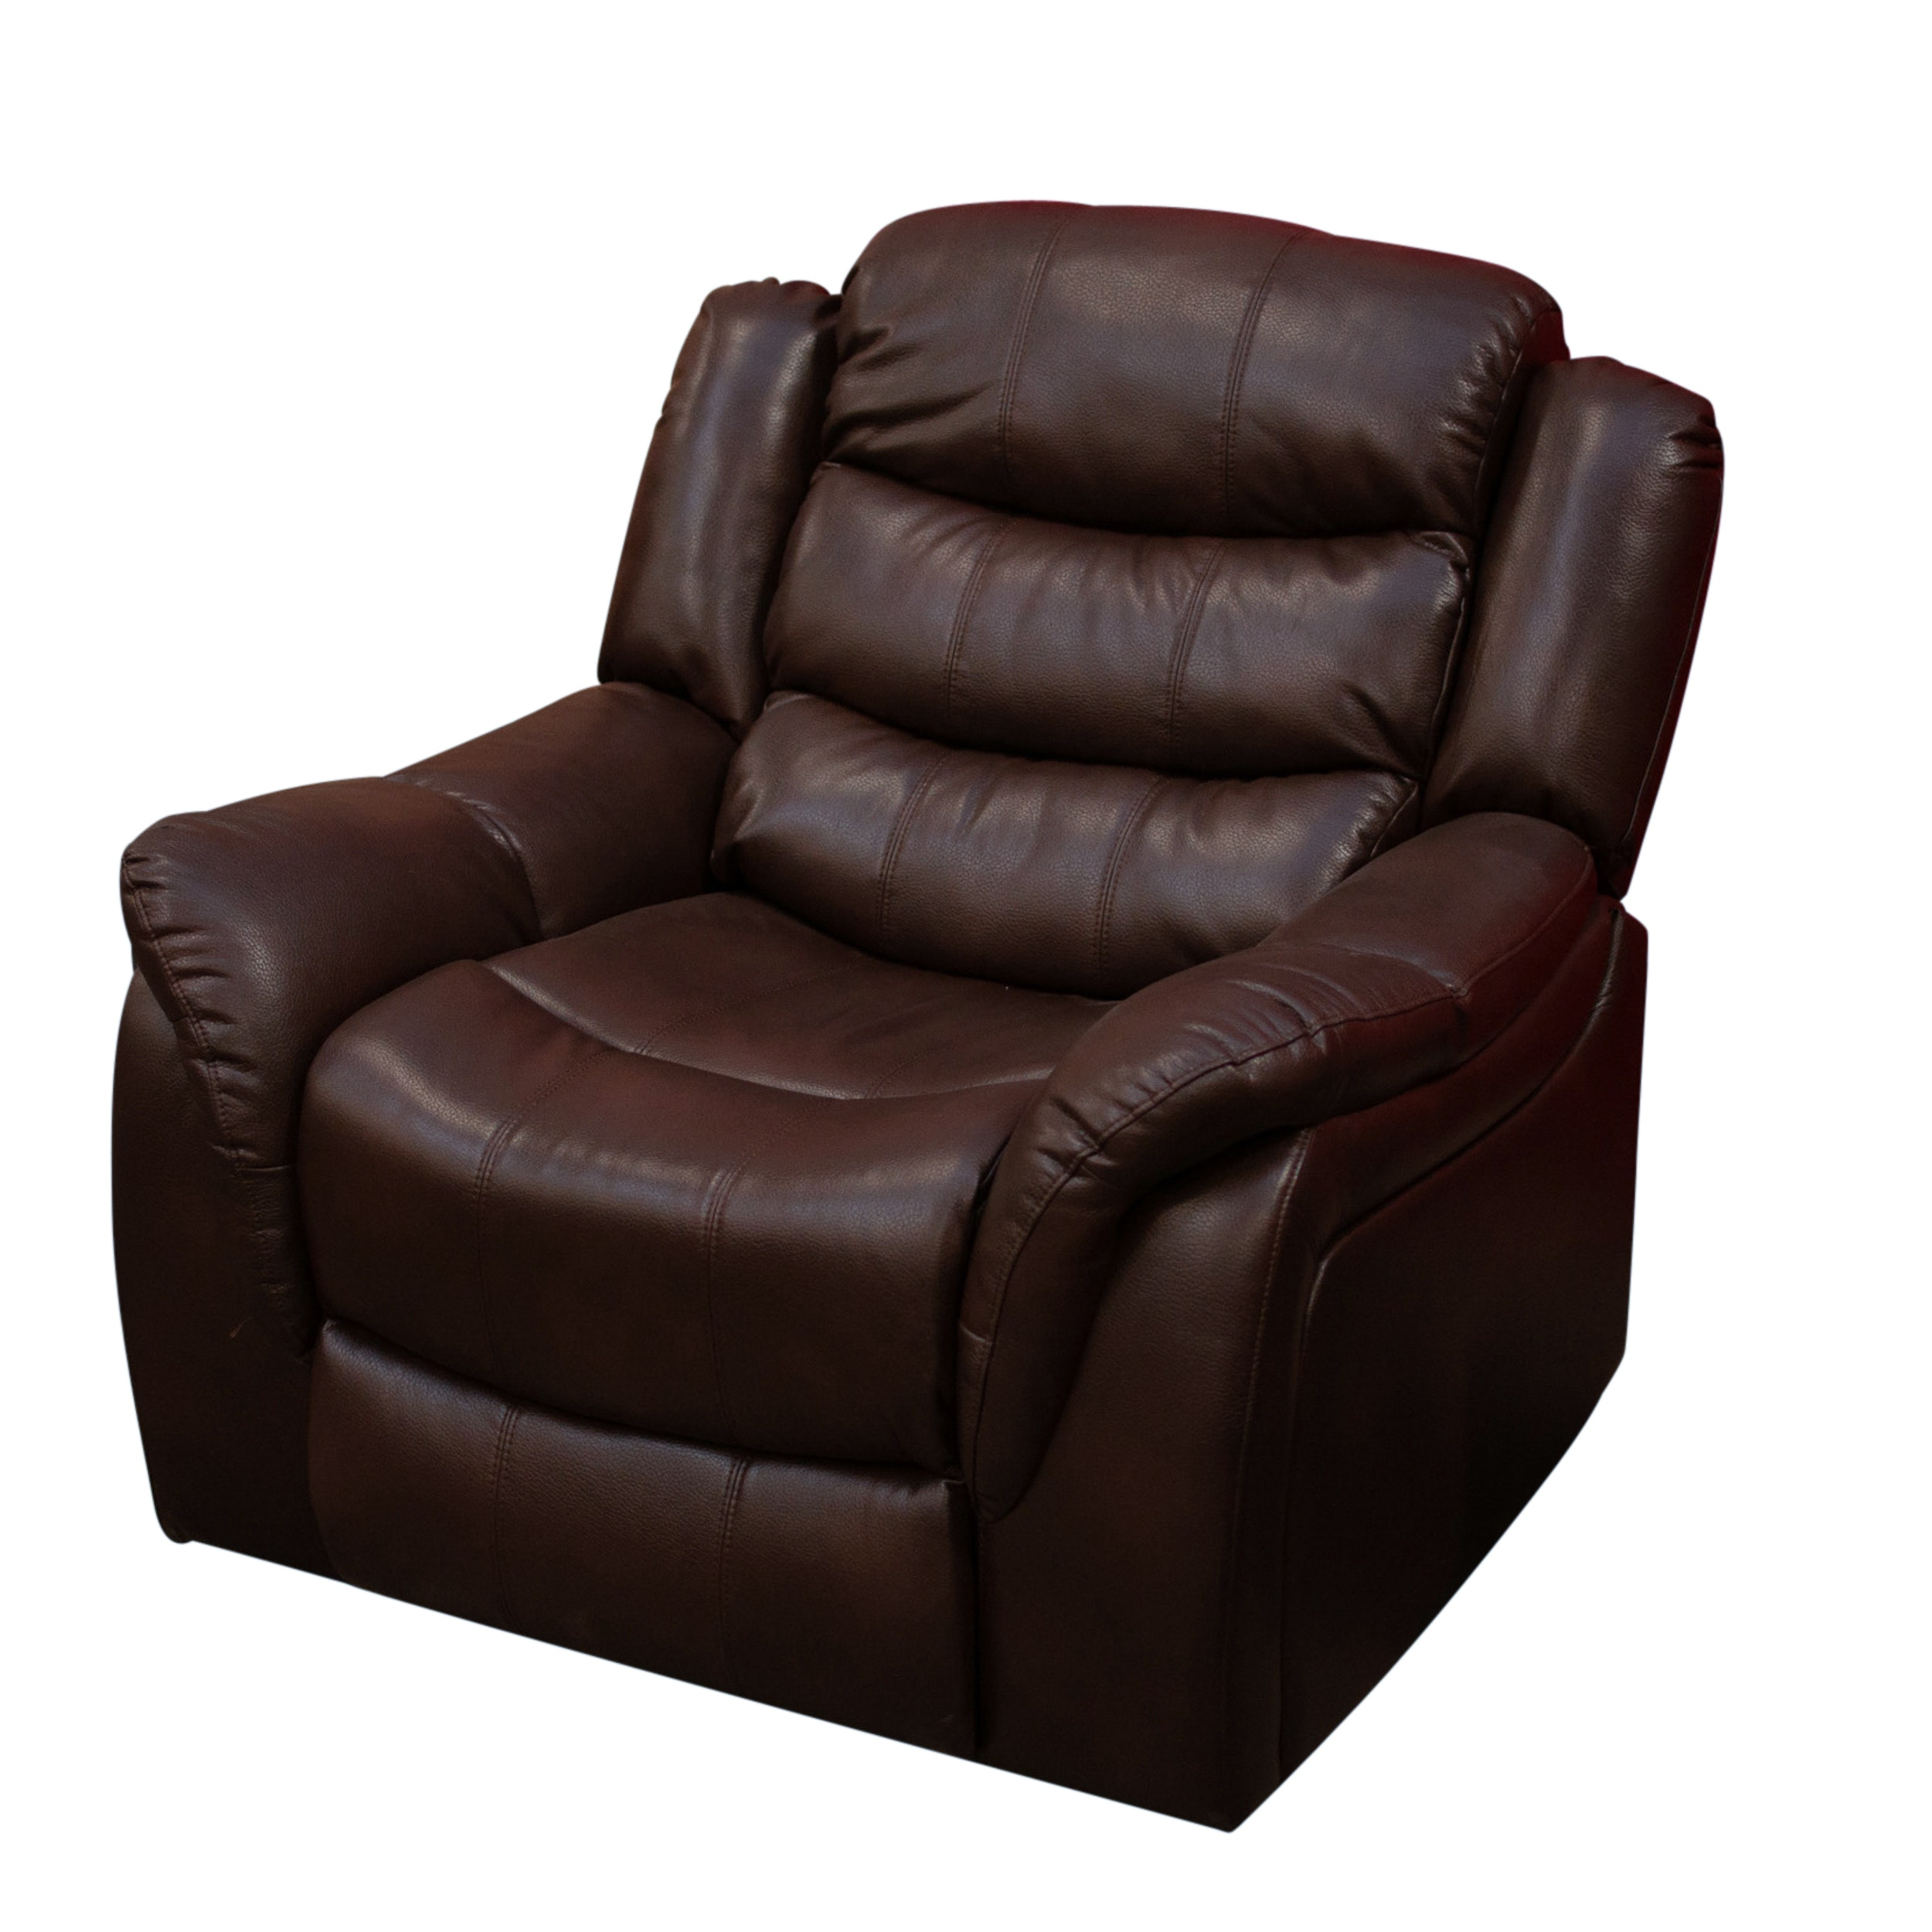 Brown Leather Reclining Club Chair, Contemporary